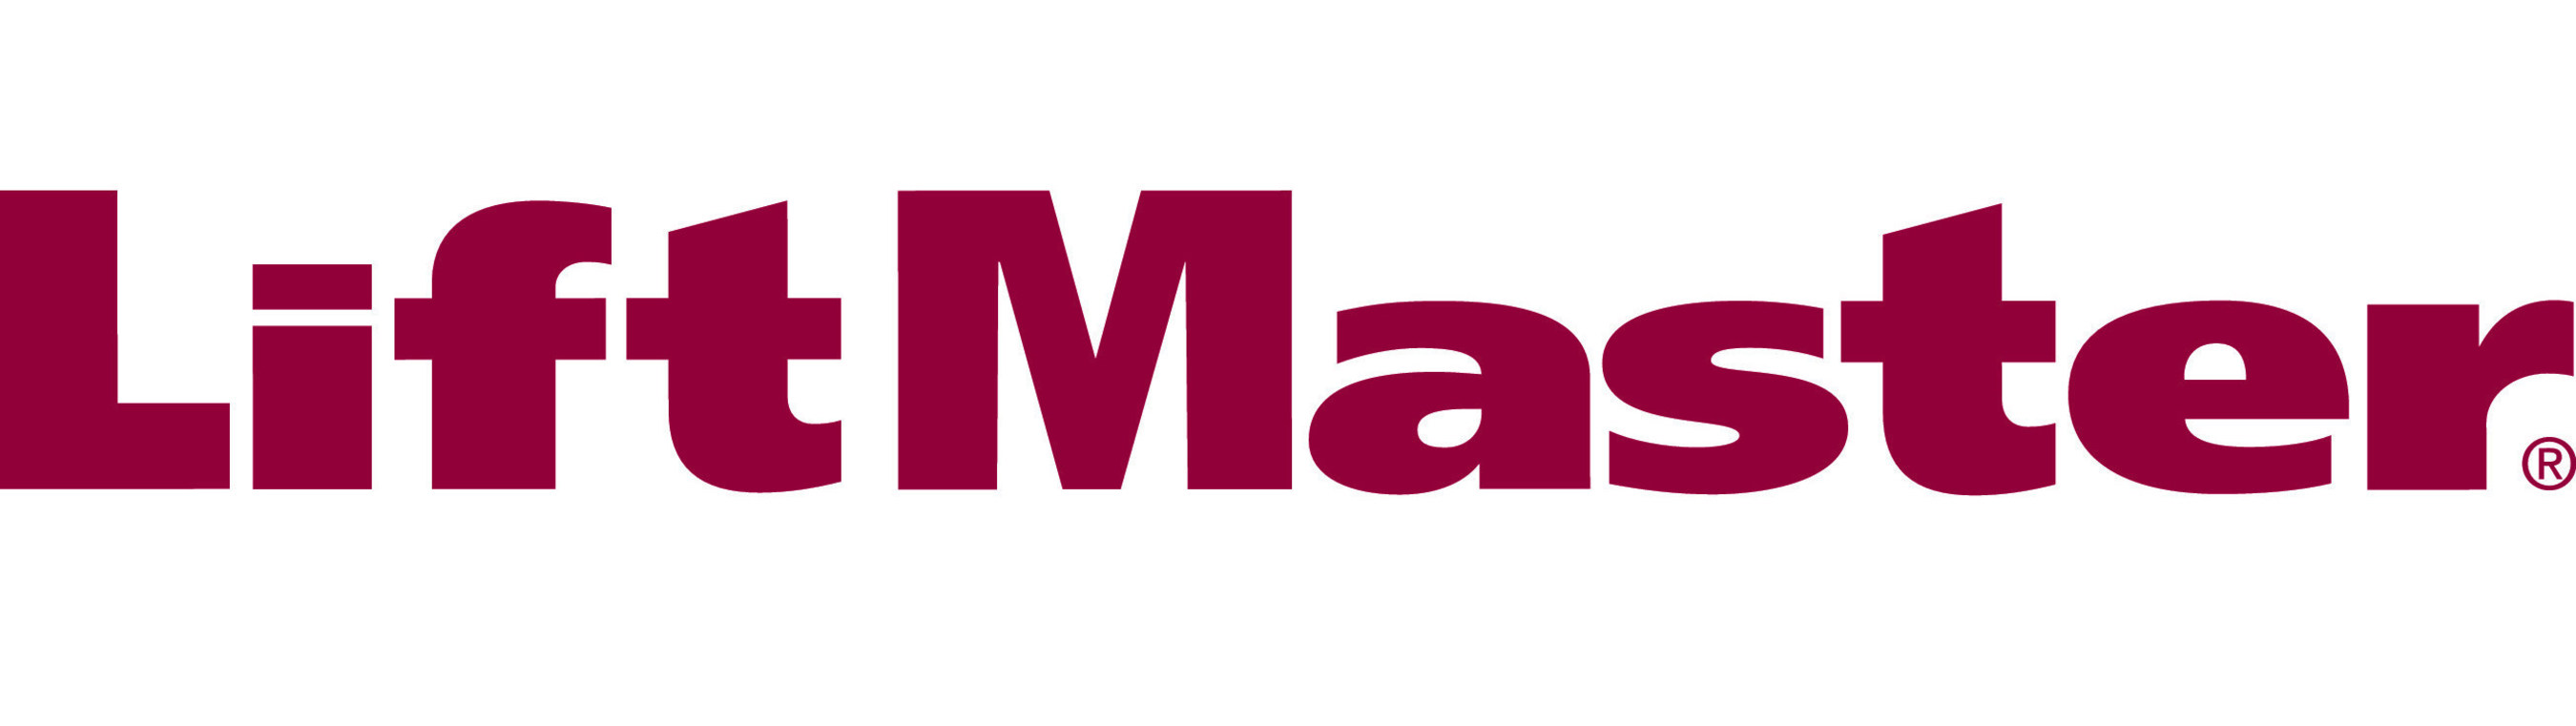 LiftMaster' Provides Smart Home Solutions for Millennial Homebuyers